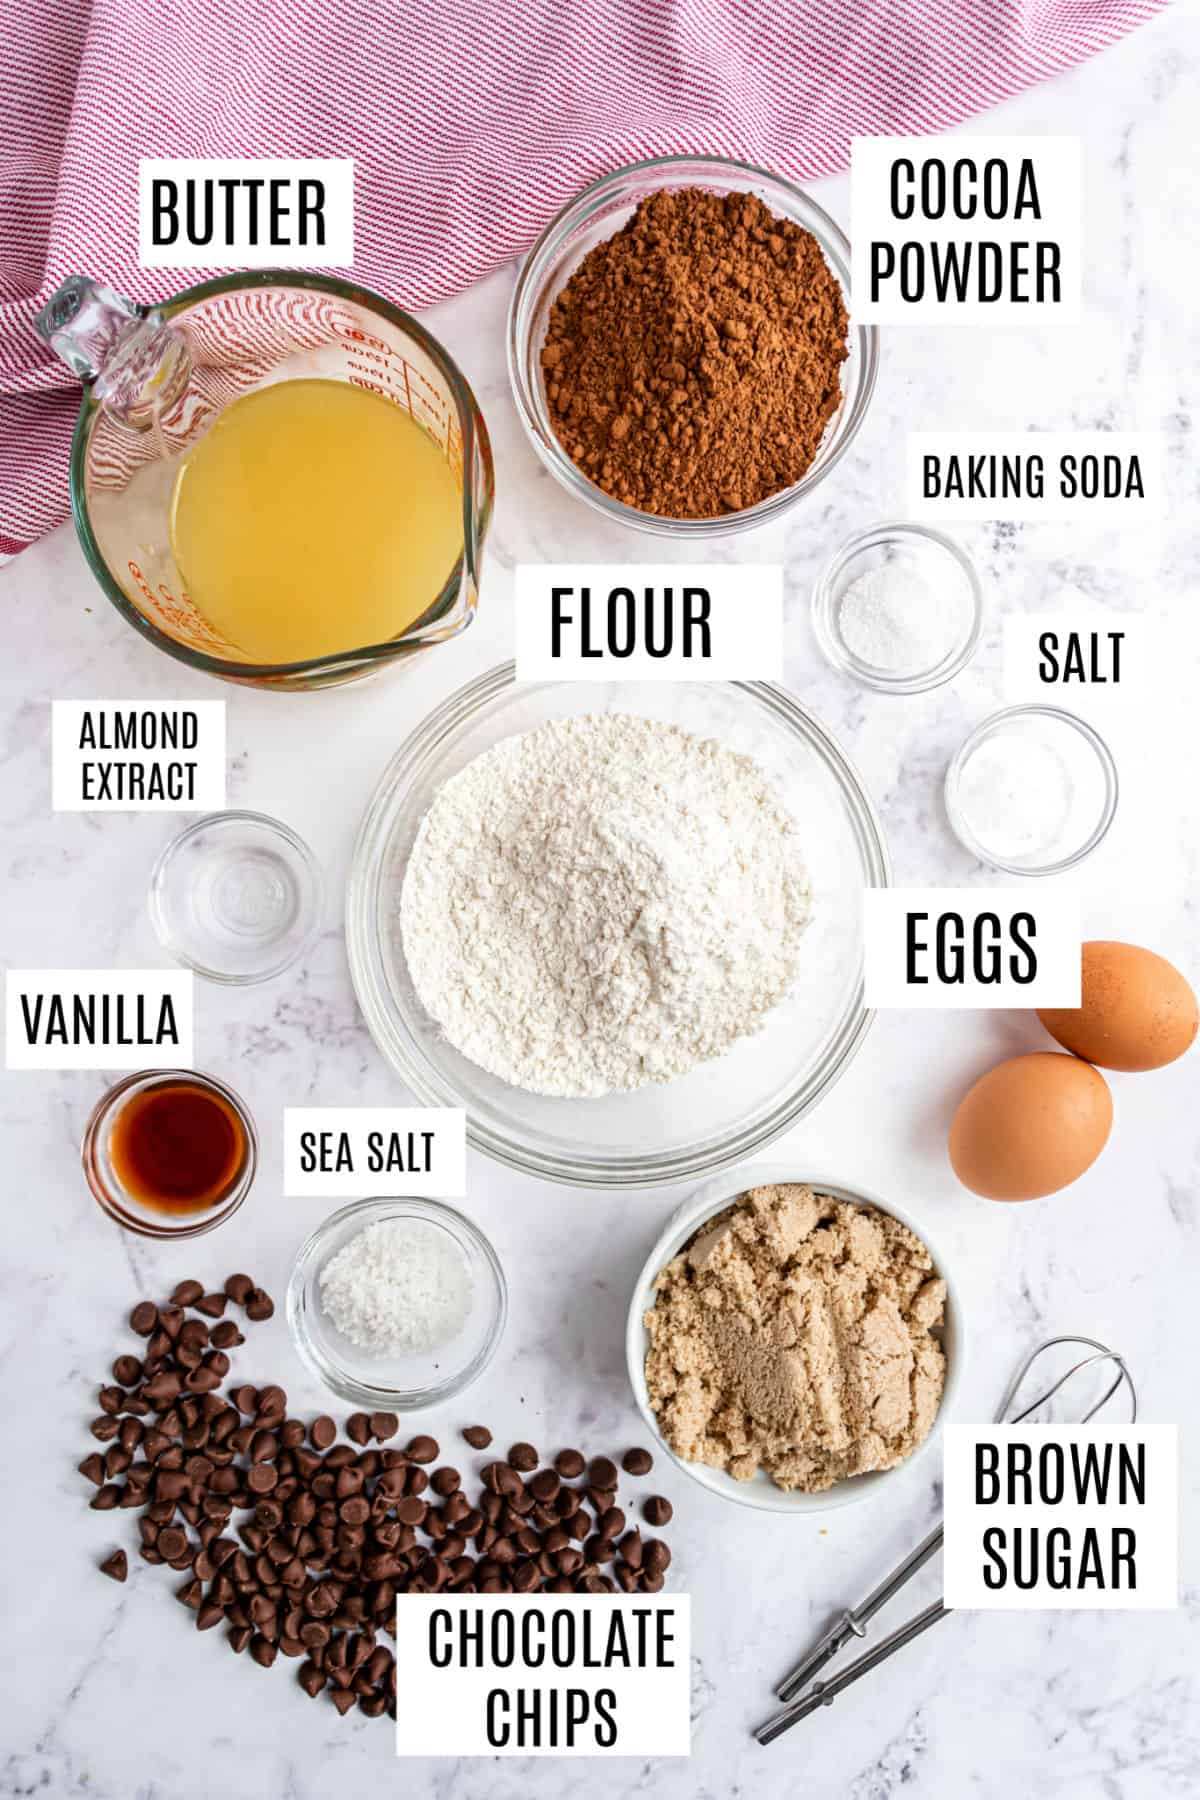 Ingredients needed to make chocolate chocolate chip cookies.